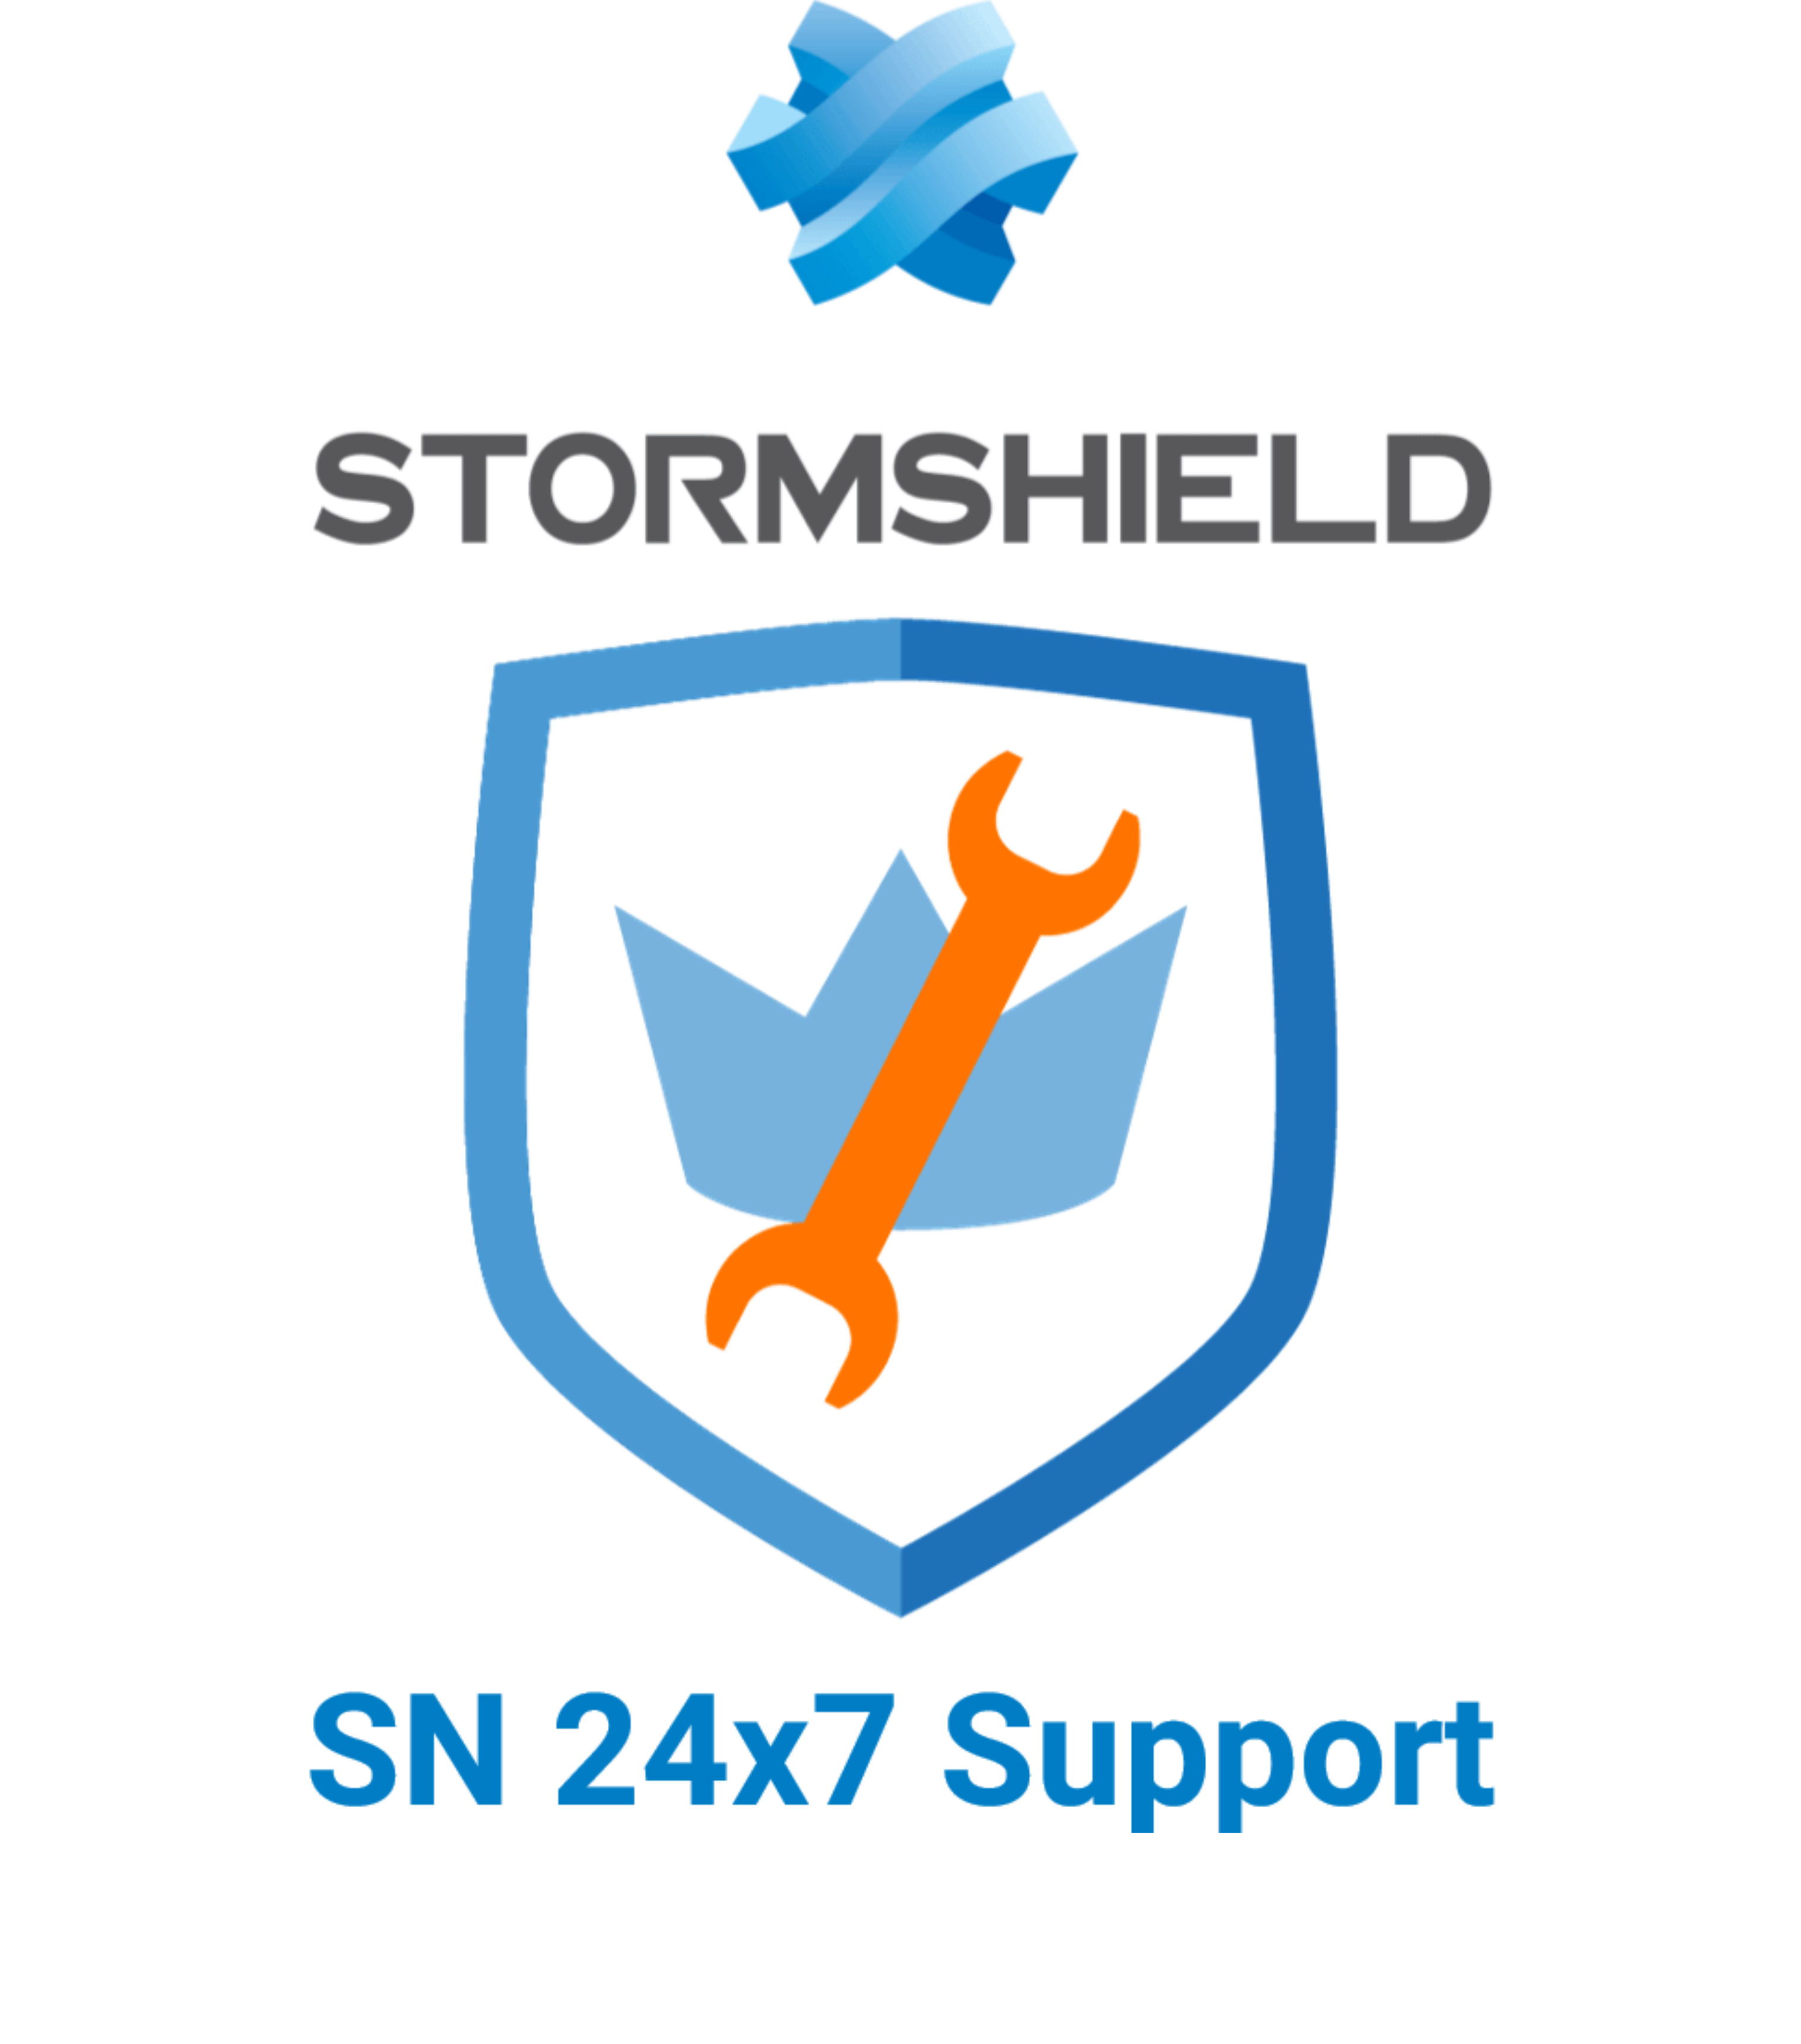 Stormshield SN210 24x7 Support